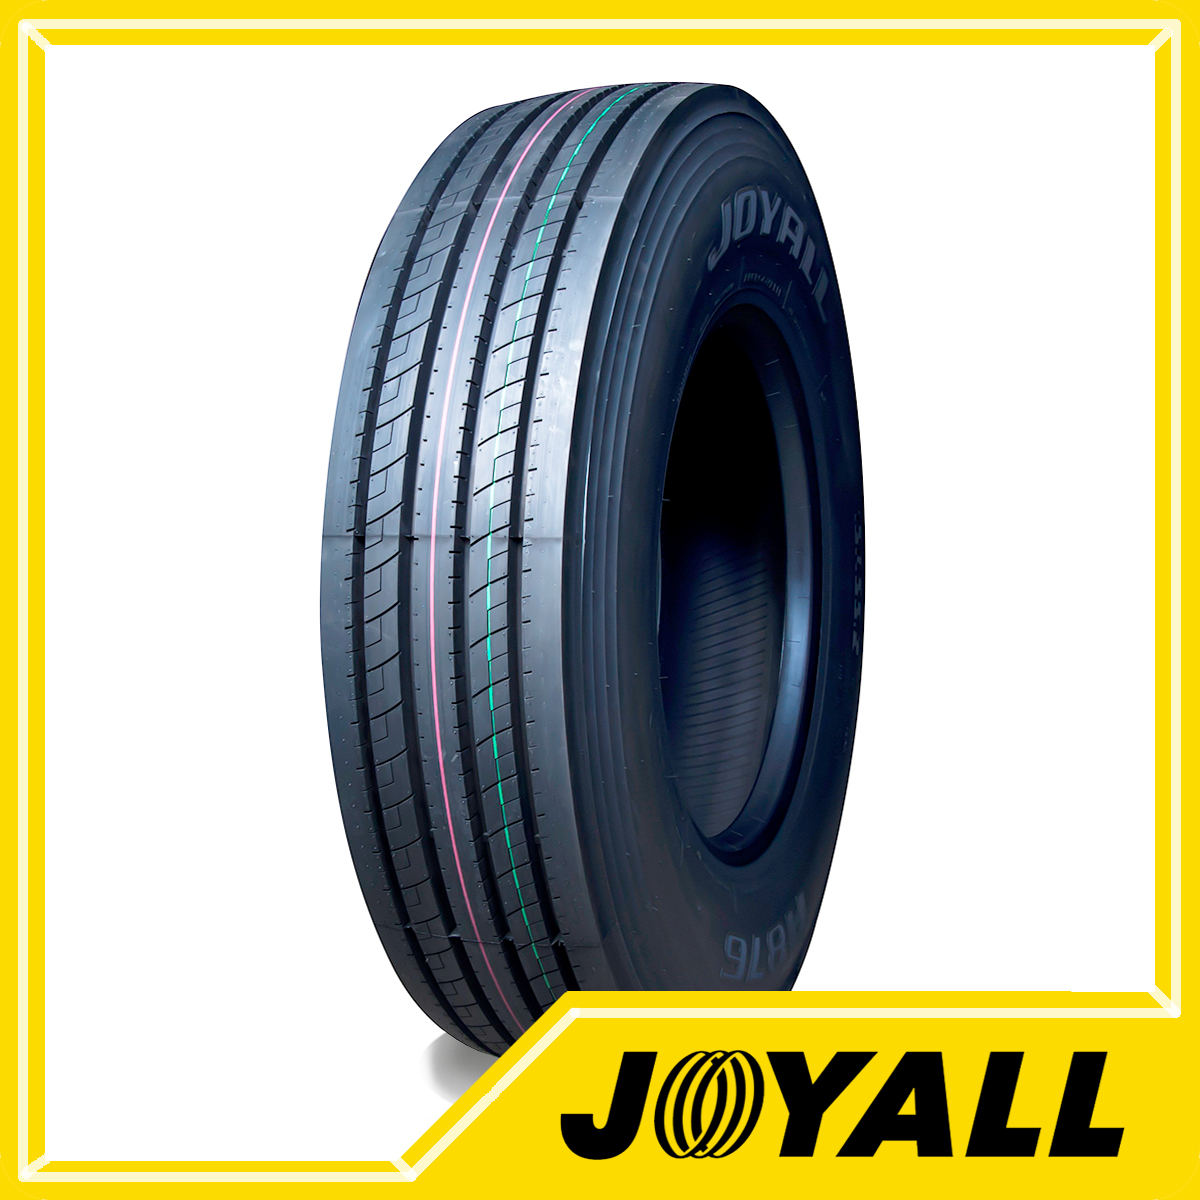 JOYALL JOYUS BRAND 11R22.5 A876 STEER PATTERN TRUCK <strong>TIRES</strong>